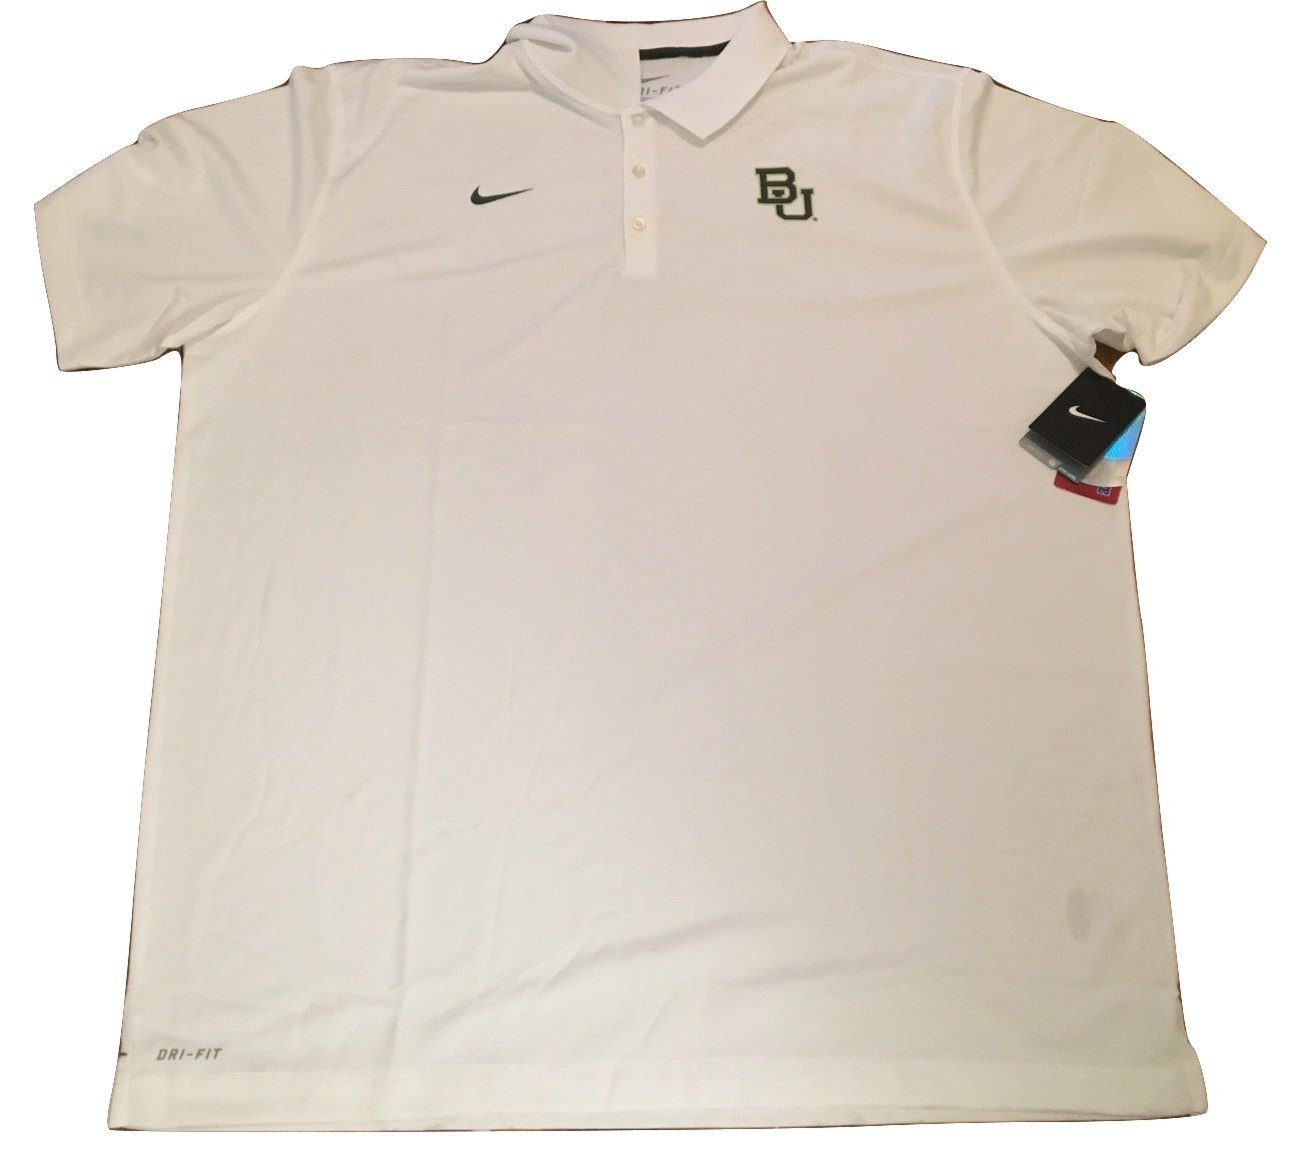 2cd6c105dbec Get Quotations · Baylor Bears Nike Dri Fit White Sideline Polo Shirt 3XL